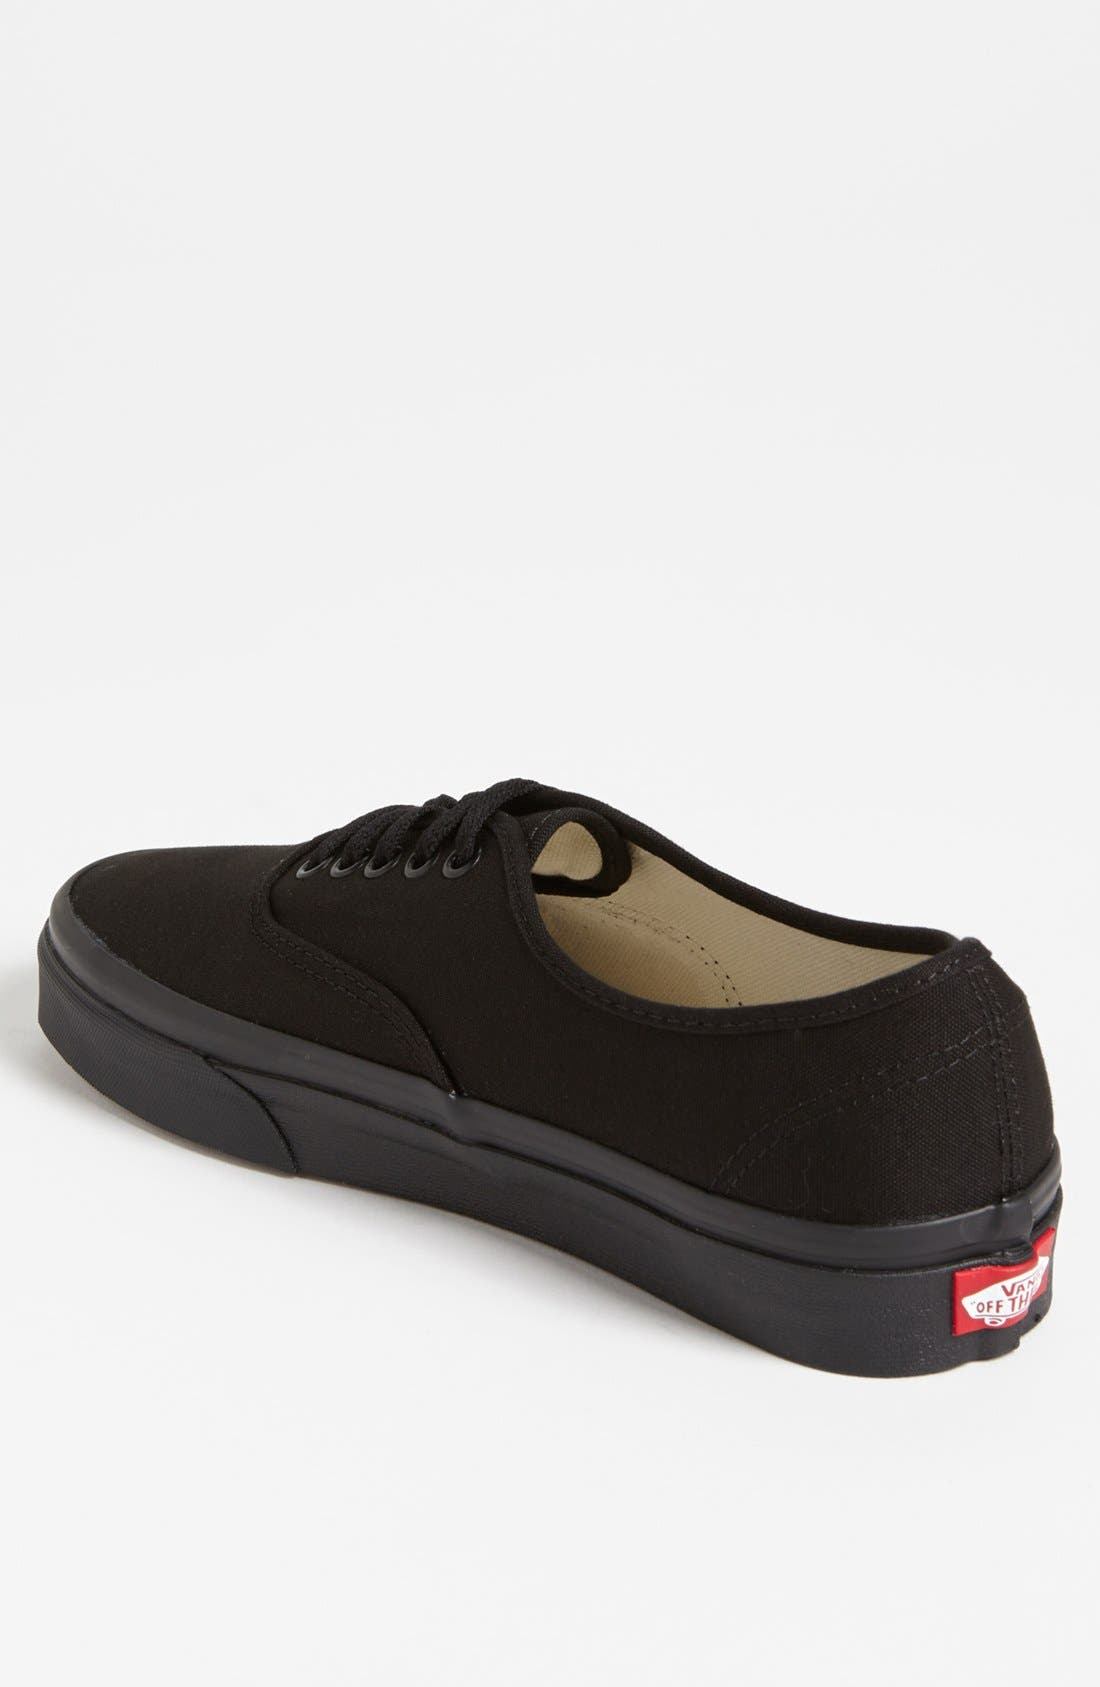 VANS,                             'Authentic' Sneaker,                             Alternate thumbnail 3, color,                             BLACK/ BLACK